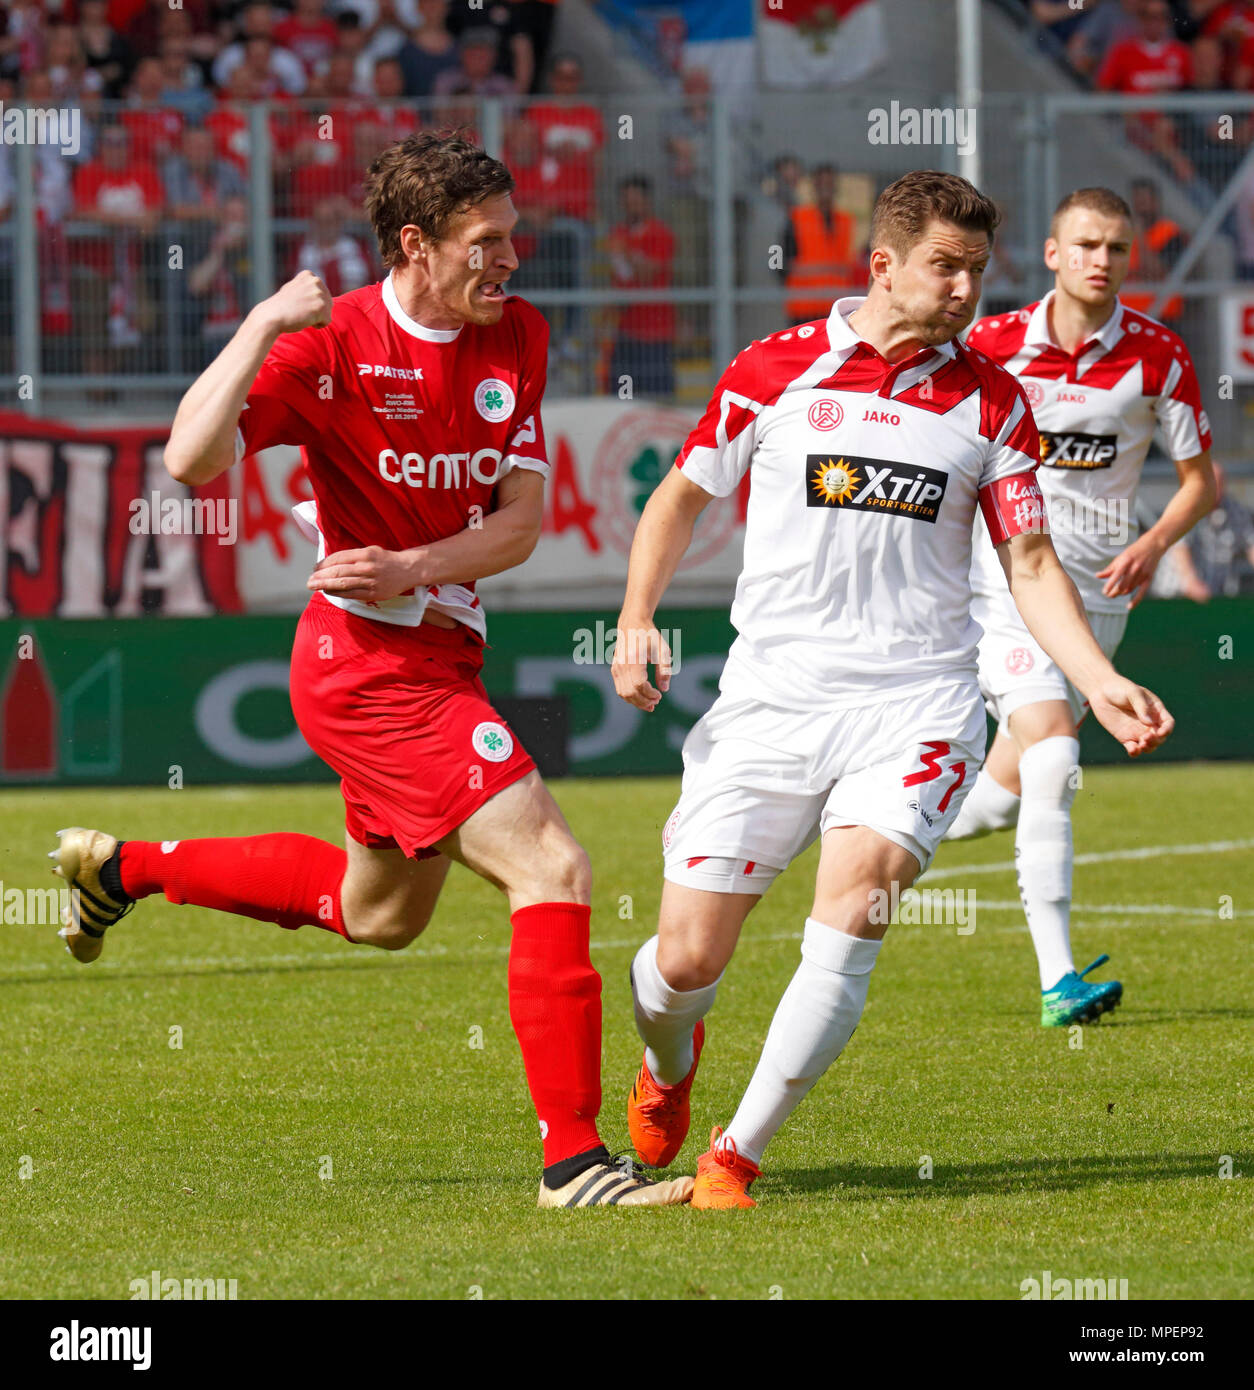 sports, football, Lower Rhine Cup, 2017/2018, final, Rot-Weiss Oberhausen vs Rot Weiss Essen 2:1, Stadium Niederrhein Oberhausen, scene of the match, Robert Flessers (RWO) left and team captain Benjamin Baier (RWE), behind Nico Lucas (RWE) - Stock Image